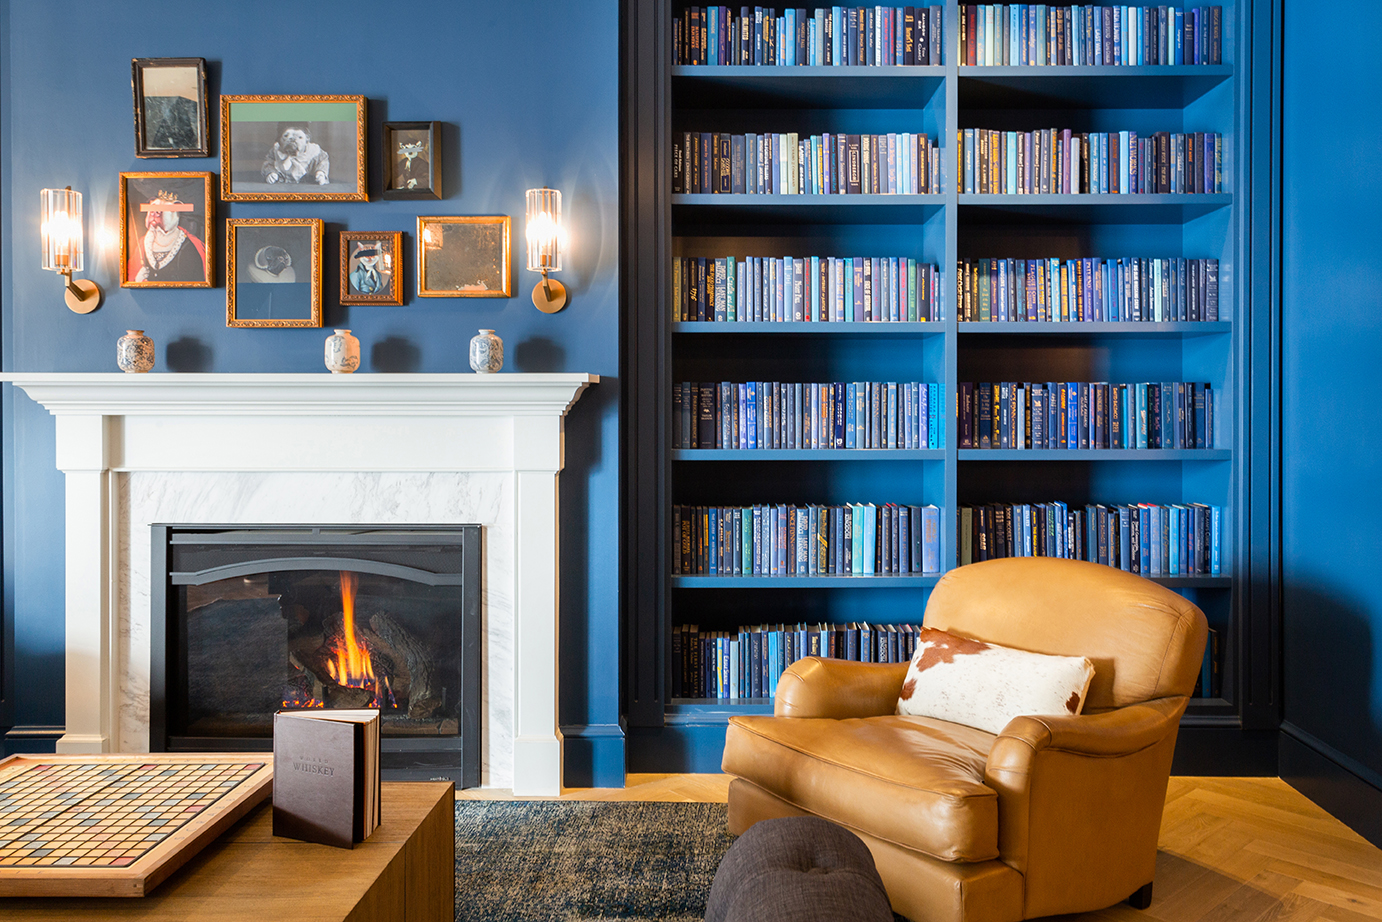 Library of an apartment building